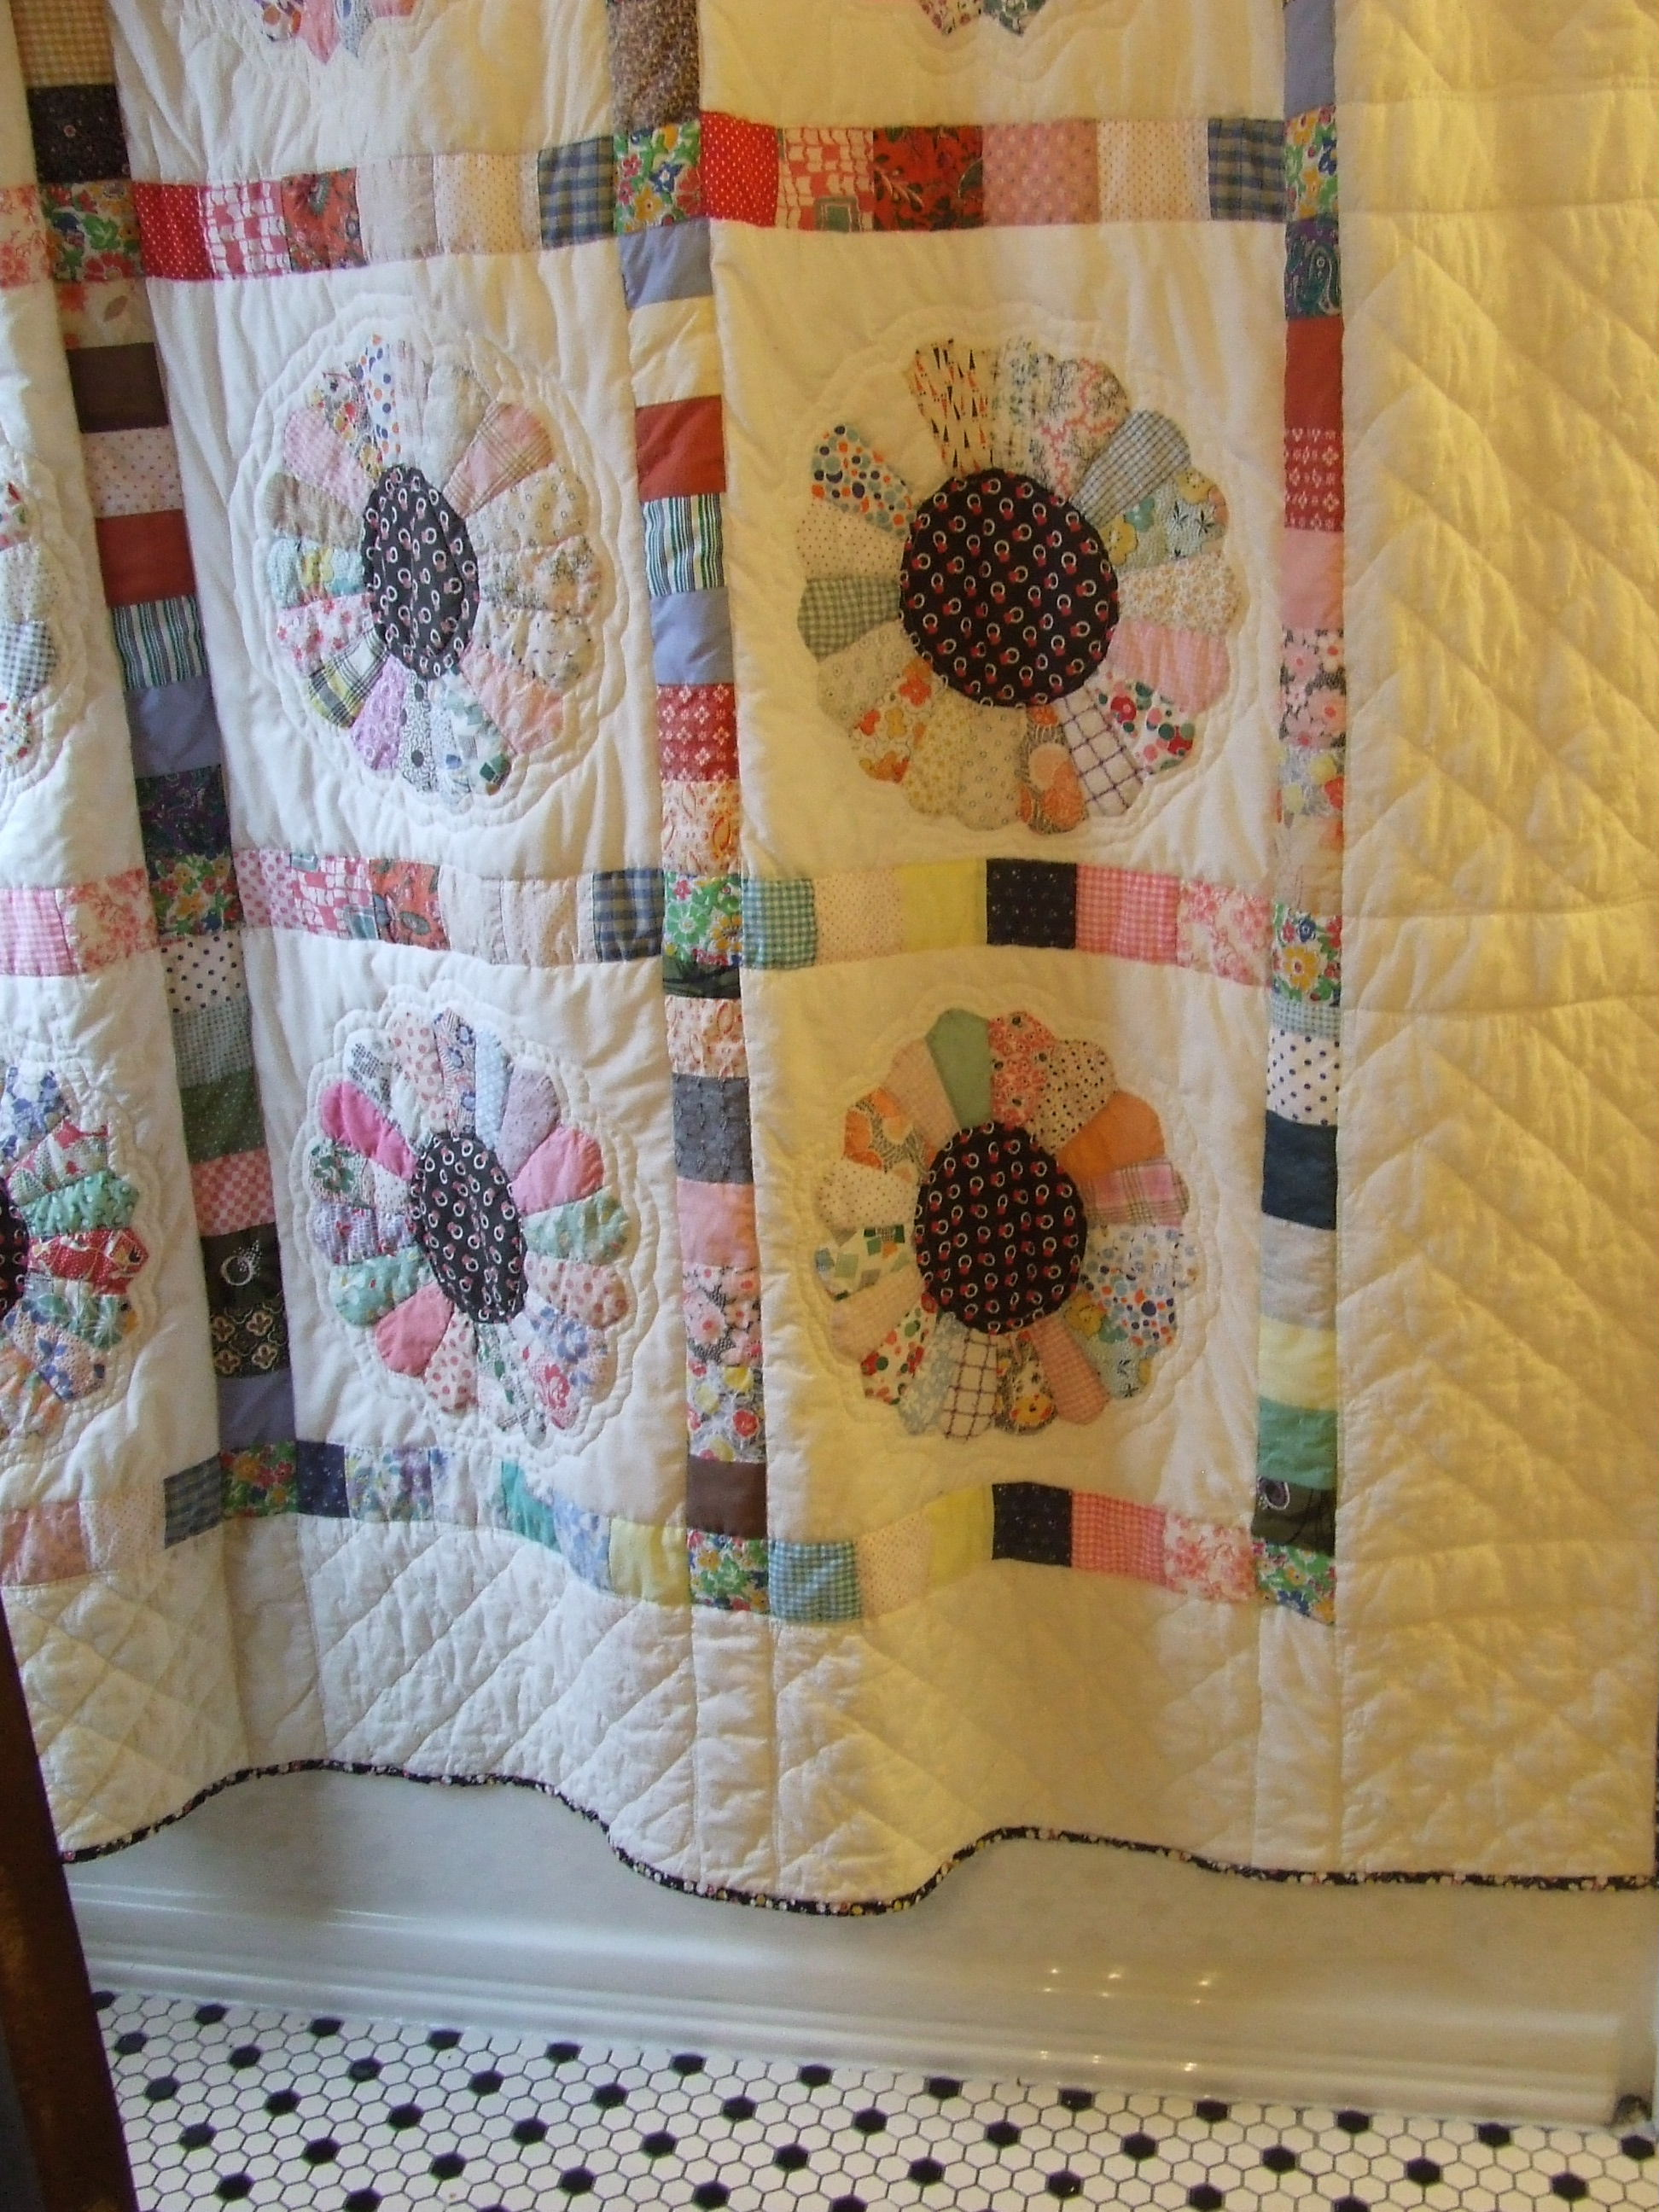 Interiors Furniture Design Shower Curtain Quilt